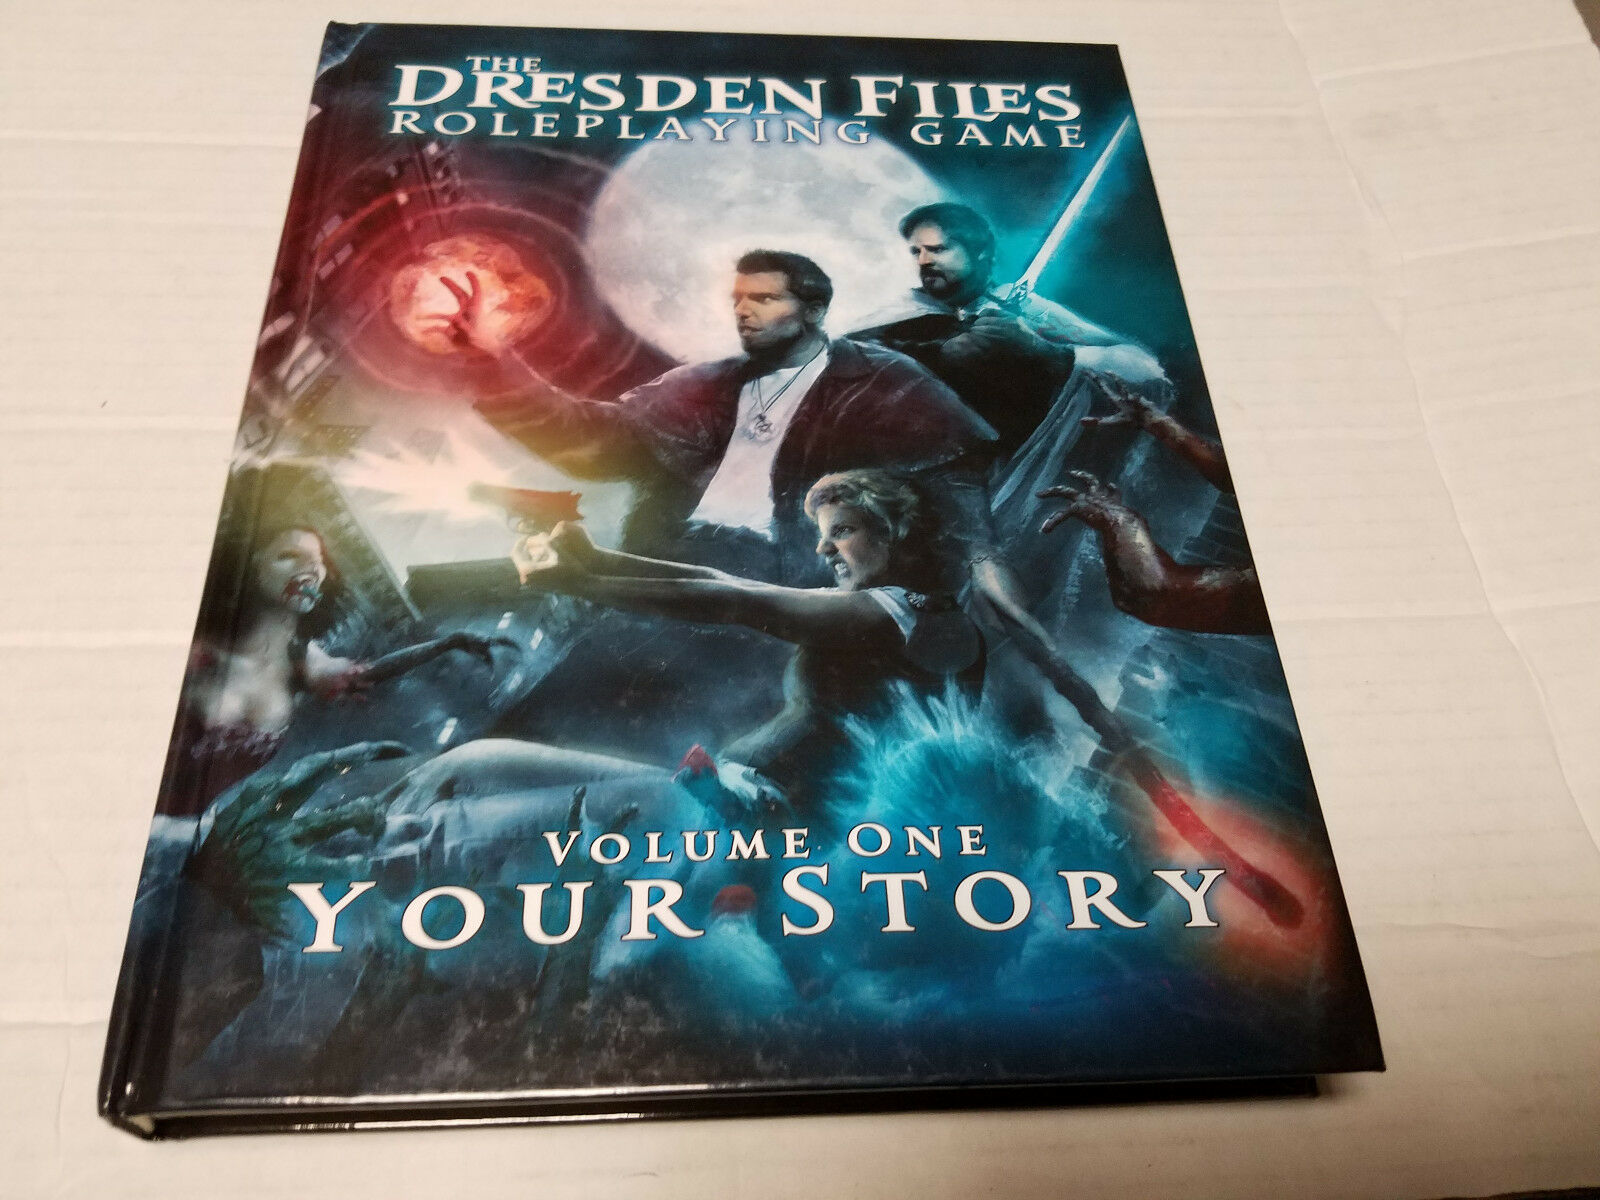 The Dresden Files Roleplaying Game Volume One  Your Story USED HC SIGNED